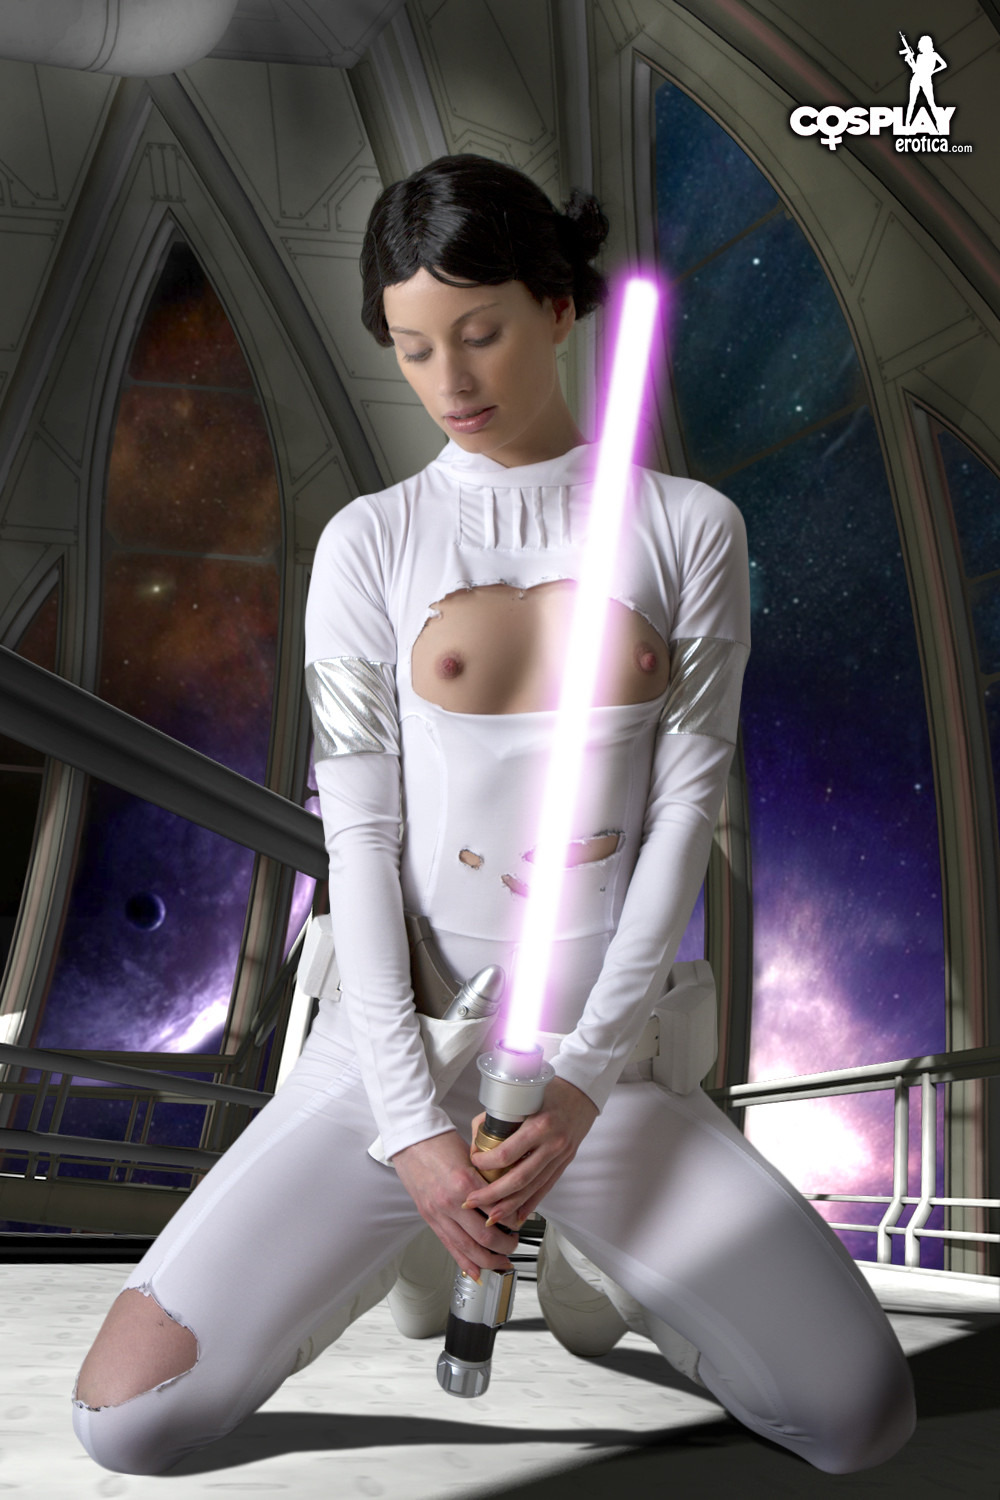 Star wars cosplay xxx nude video